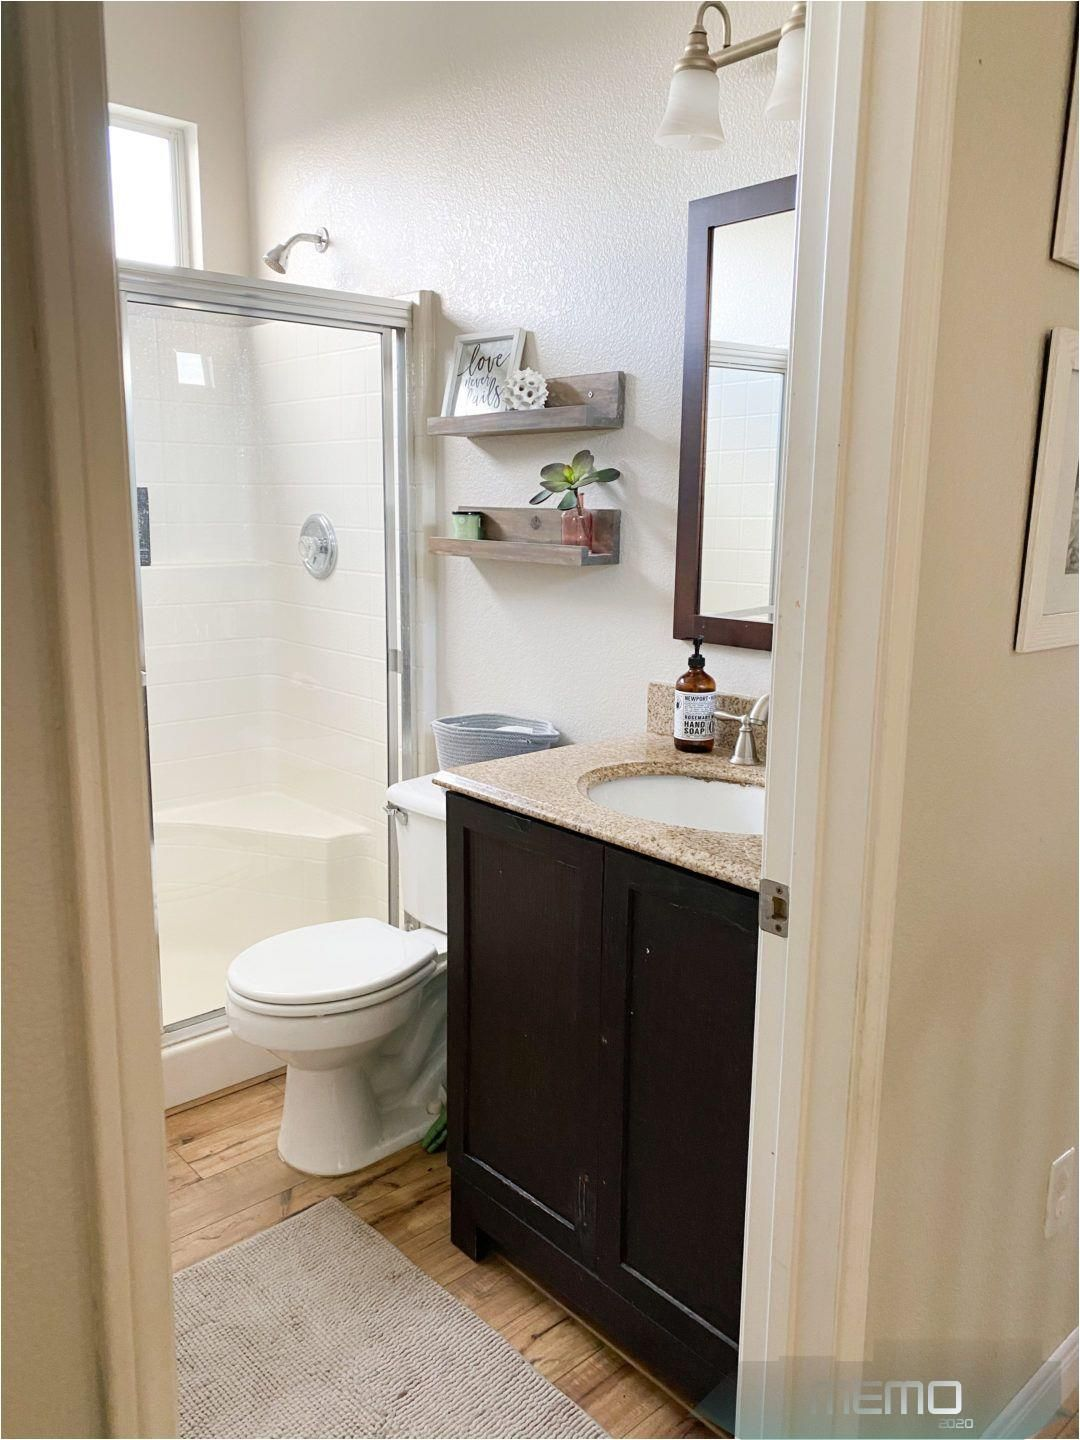 top us diy blogger domestic blonde features their small on bathroom renovation ideas 2020 id=45614